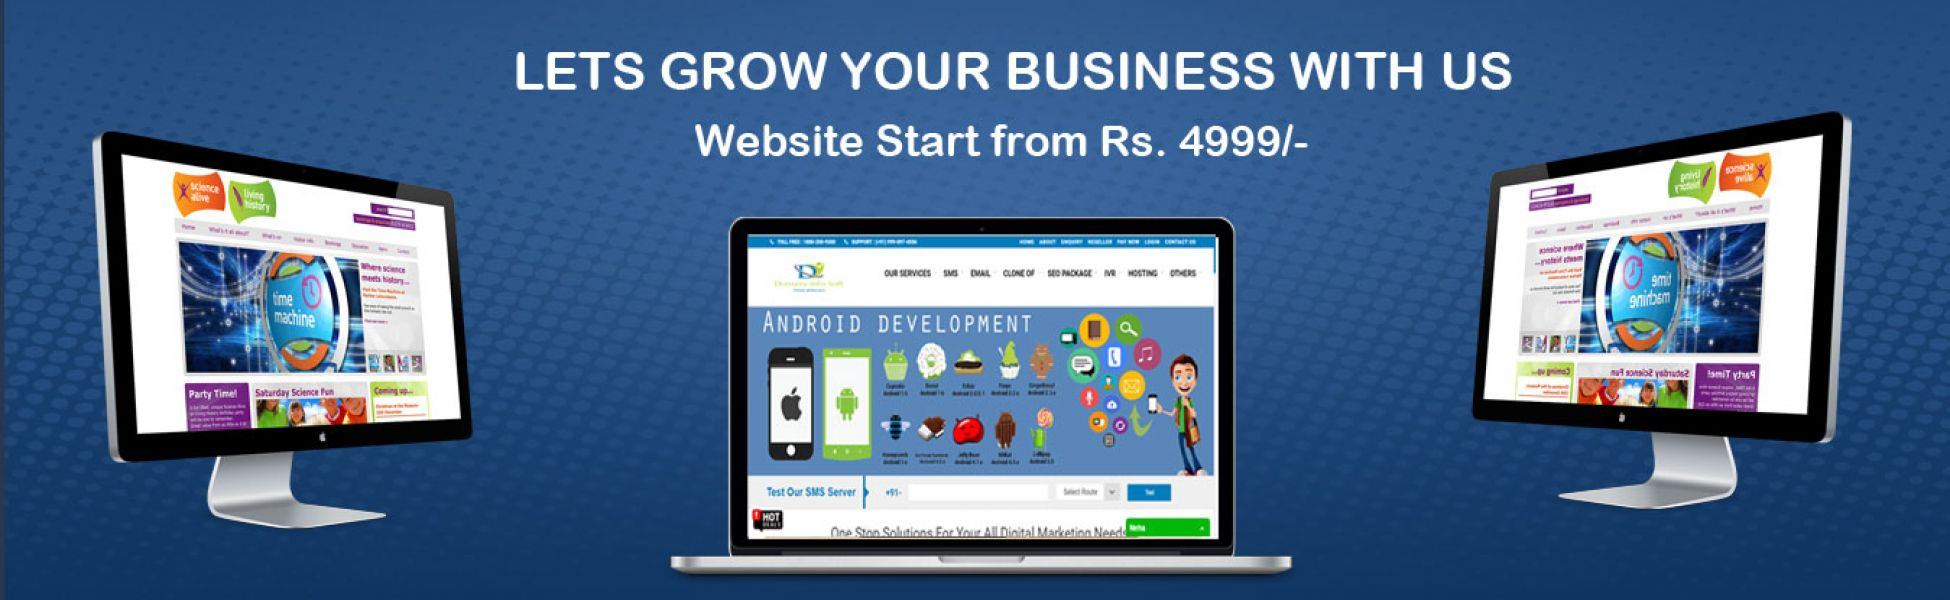 web Design Training in Delhi, Web Development Training in Delhi, Graphic Designing Training Delhi